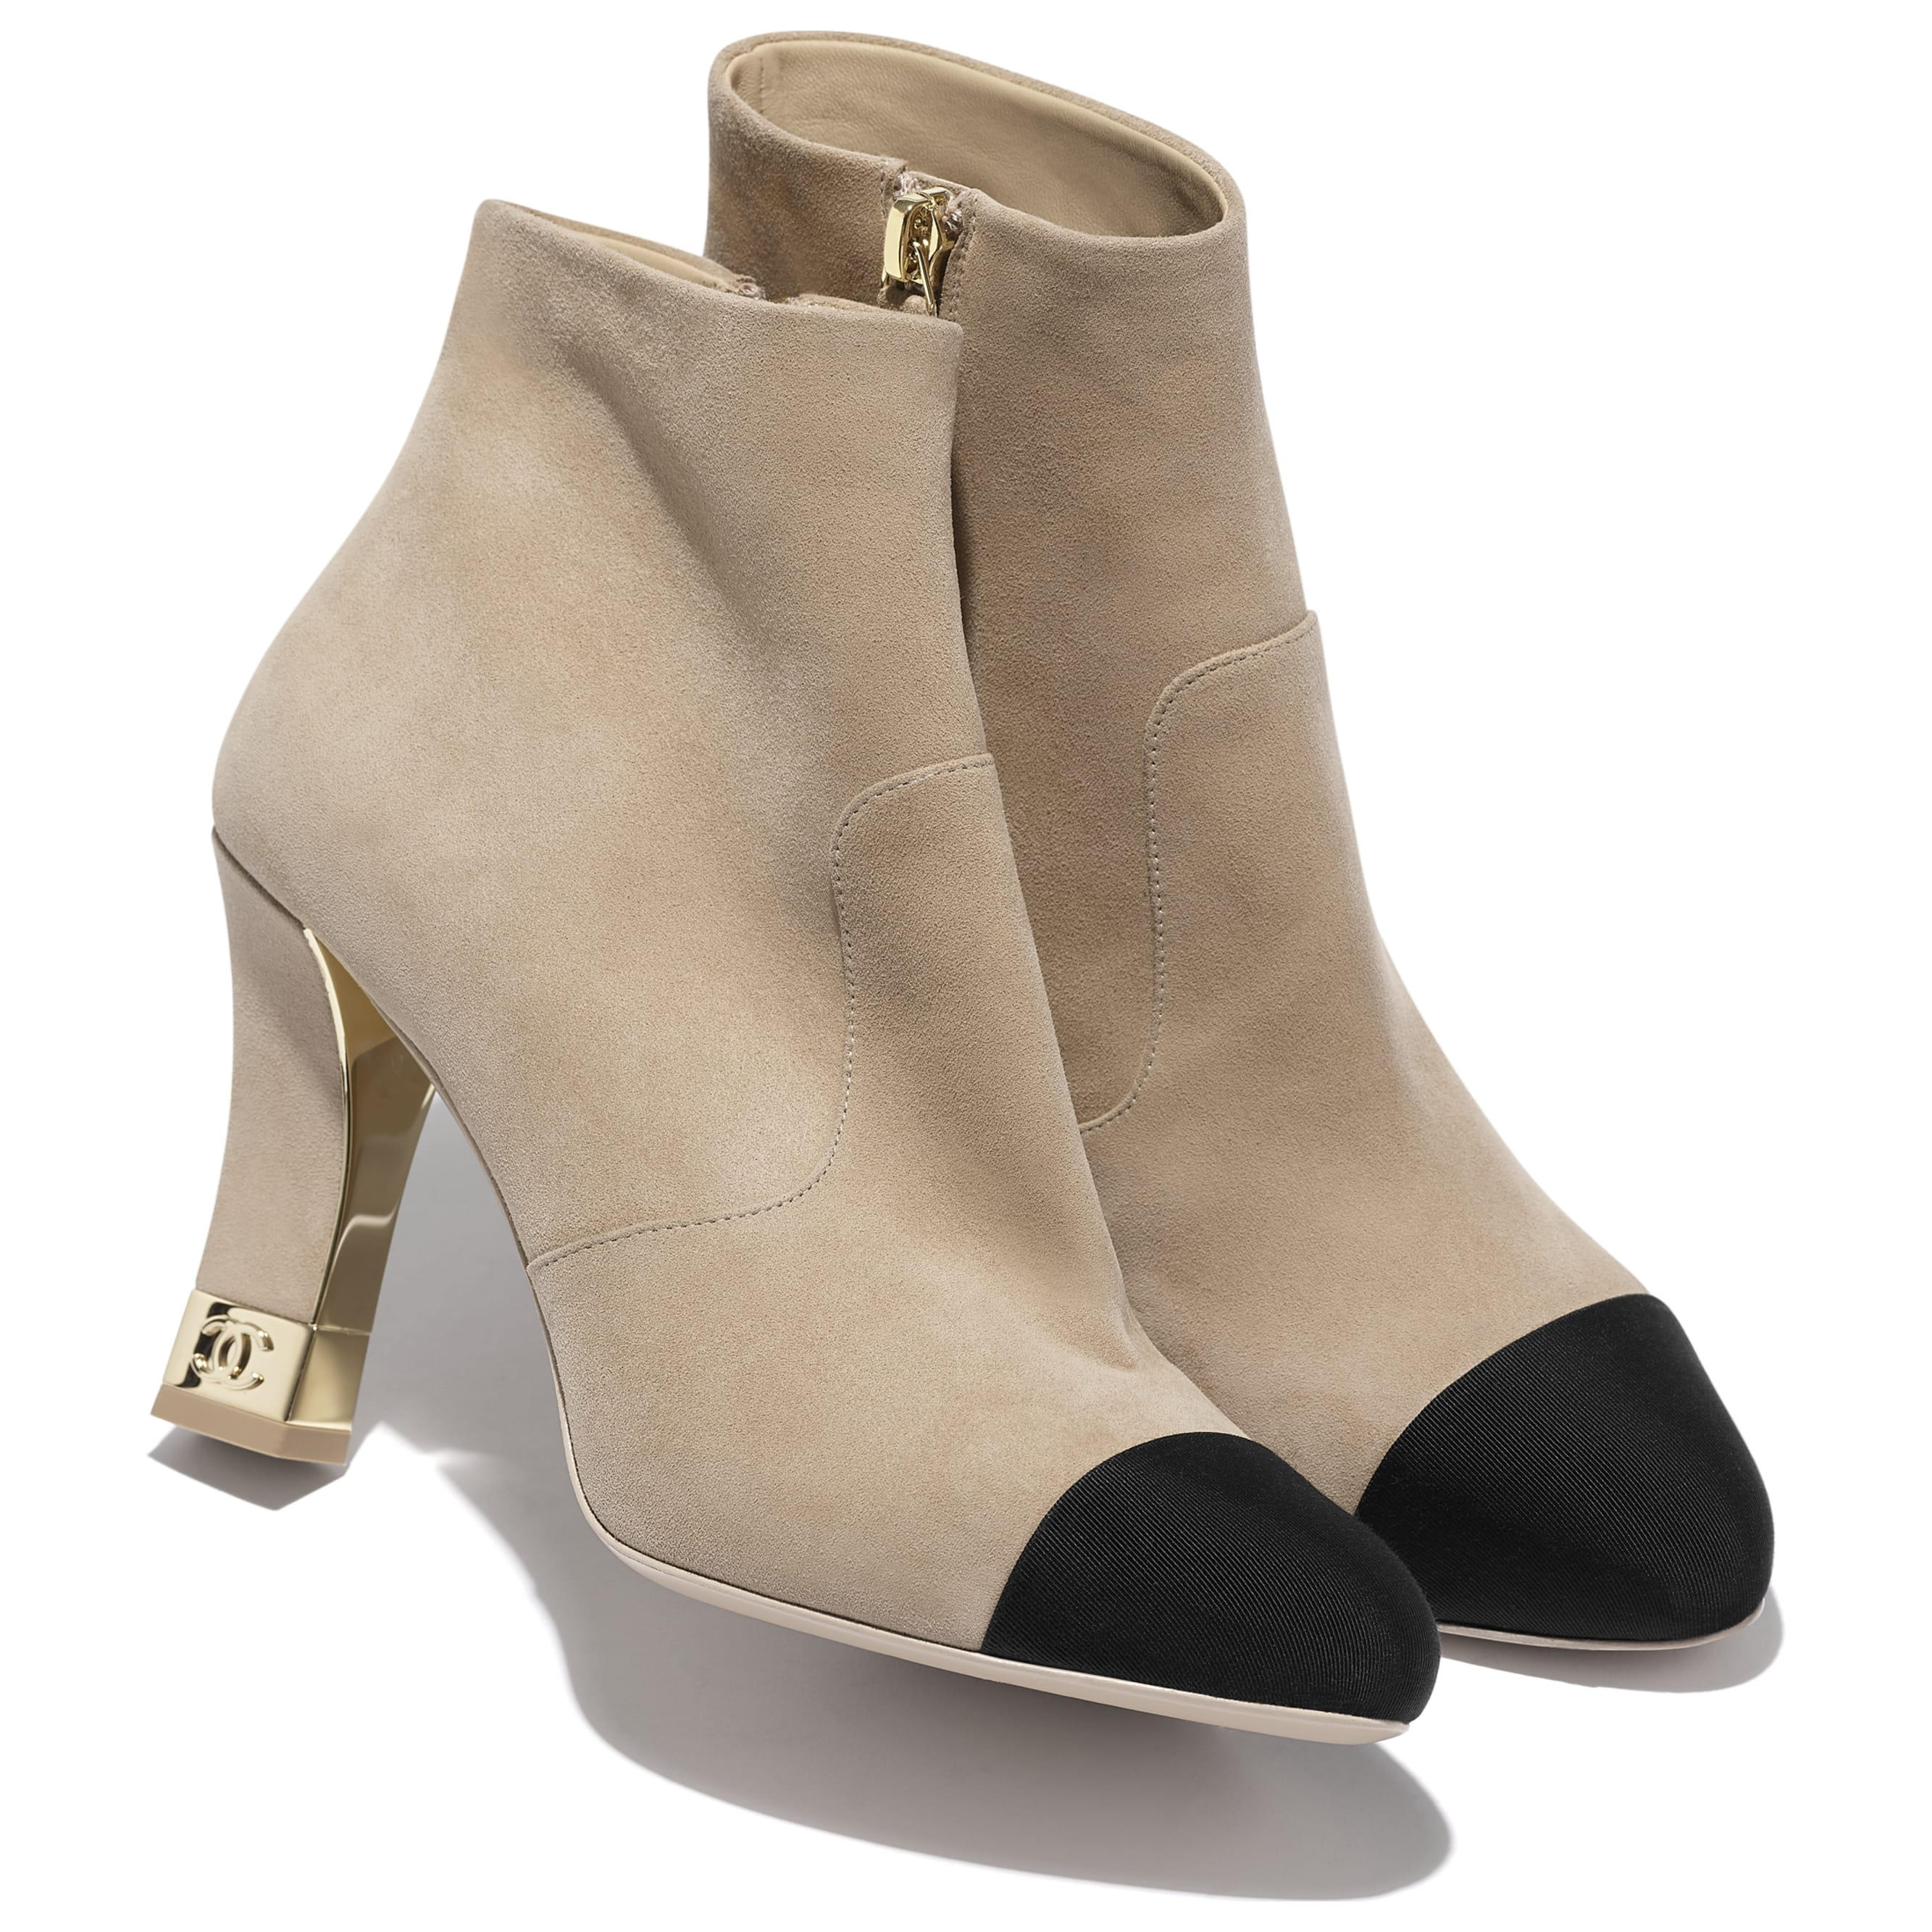 Ankle Boots - Beige & Black - Suede Kidskin & Grosgrain - CHANEL - Extra view - see standard sized version